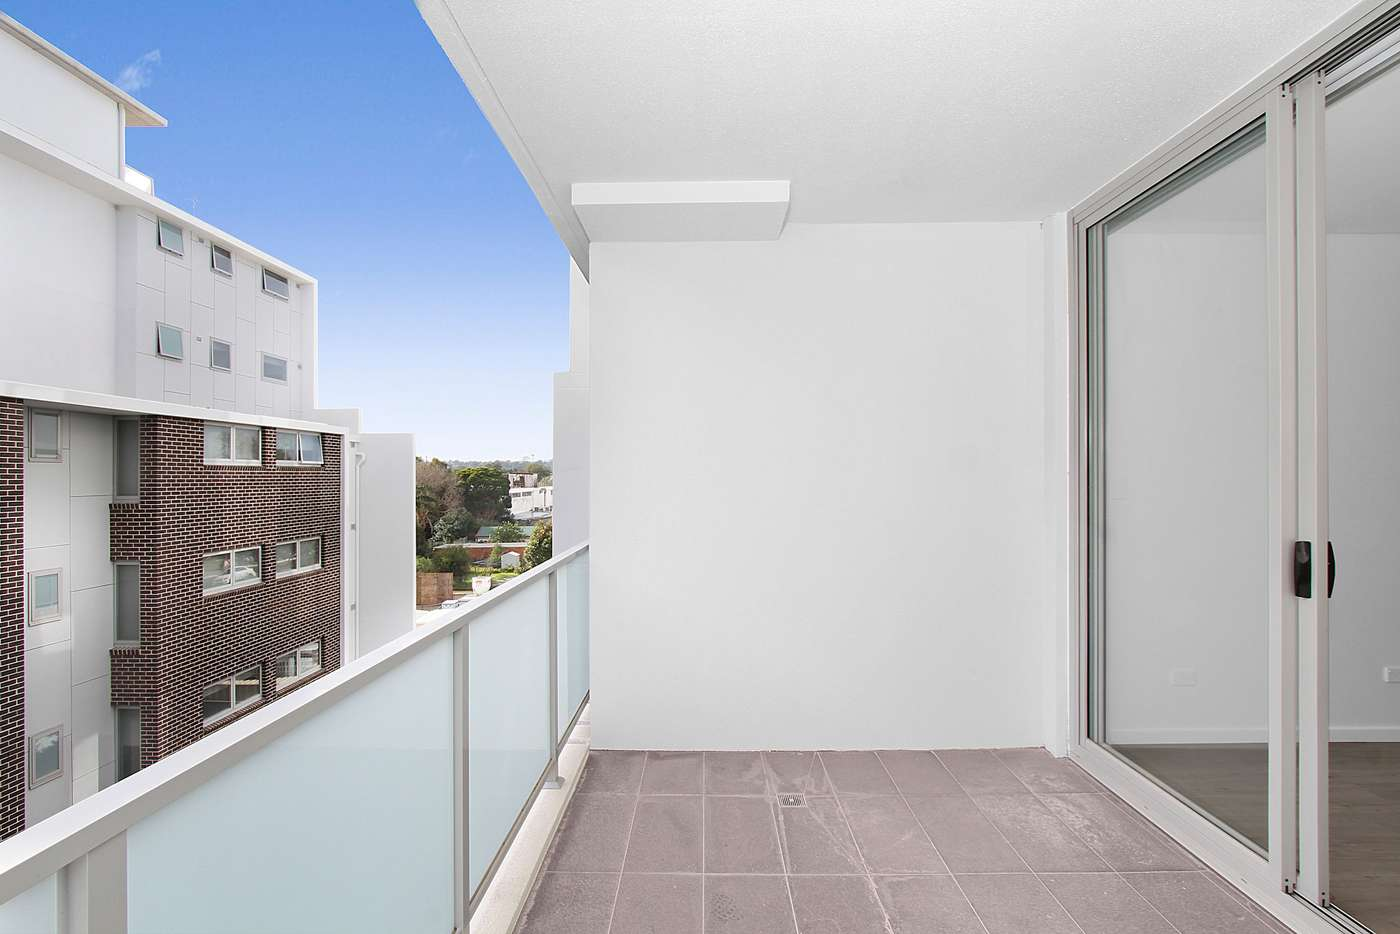 Sixth view of Homely apartment listing, 106/13-15 Weyland Street, Punchbowl NSW 2196